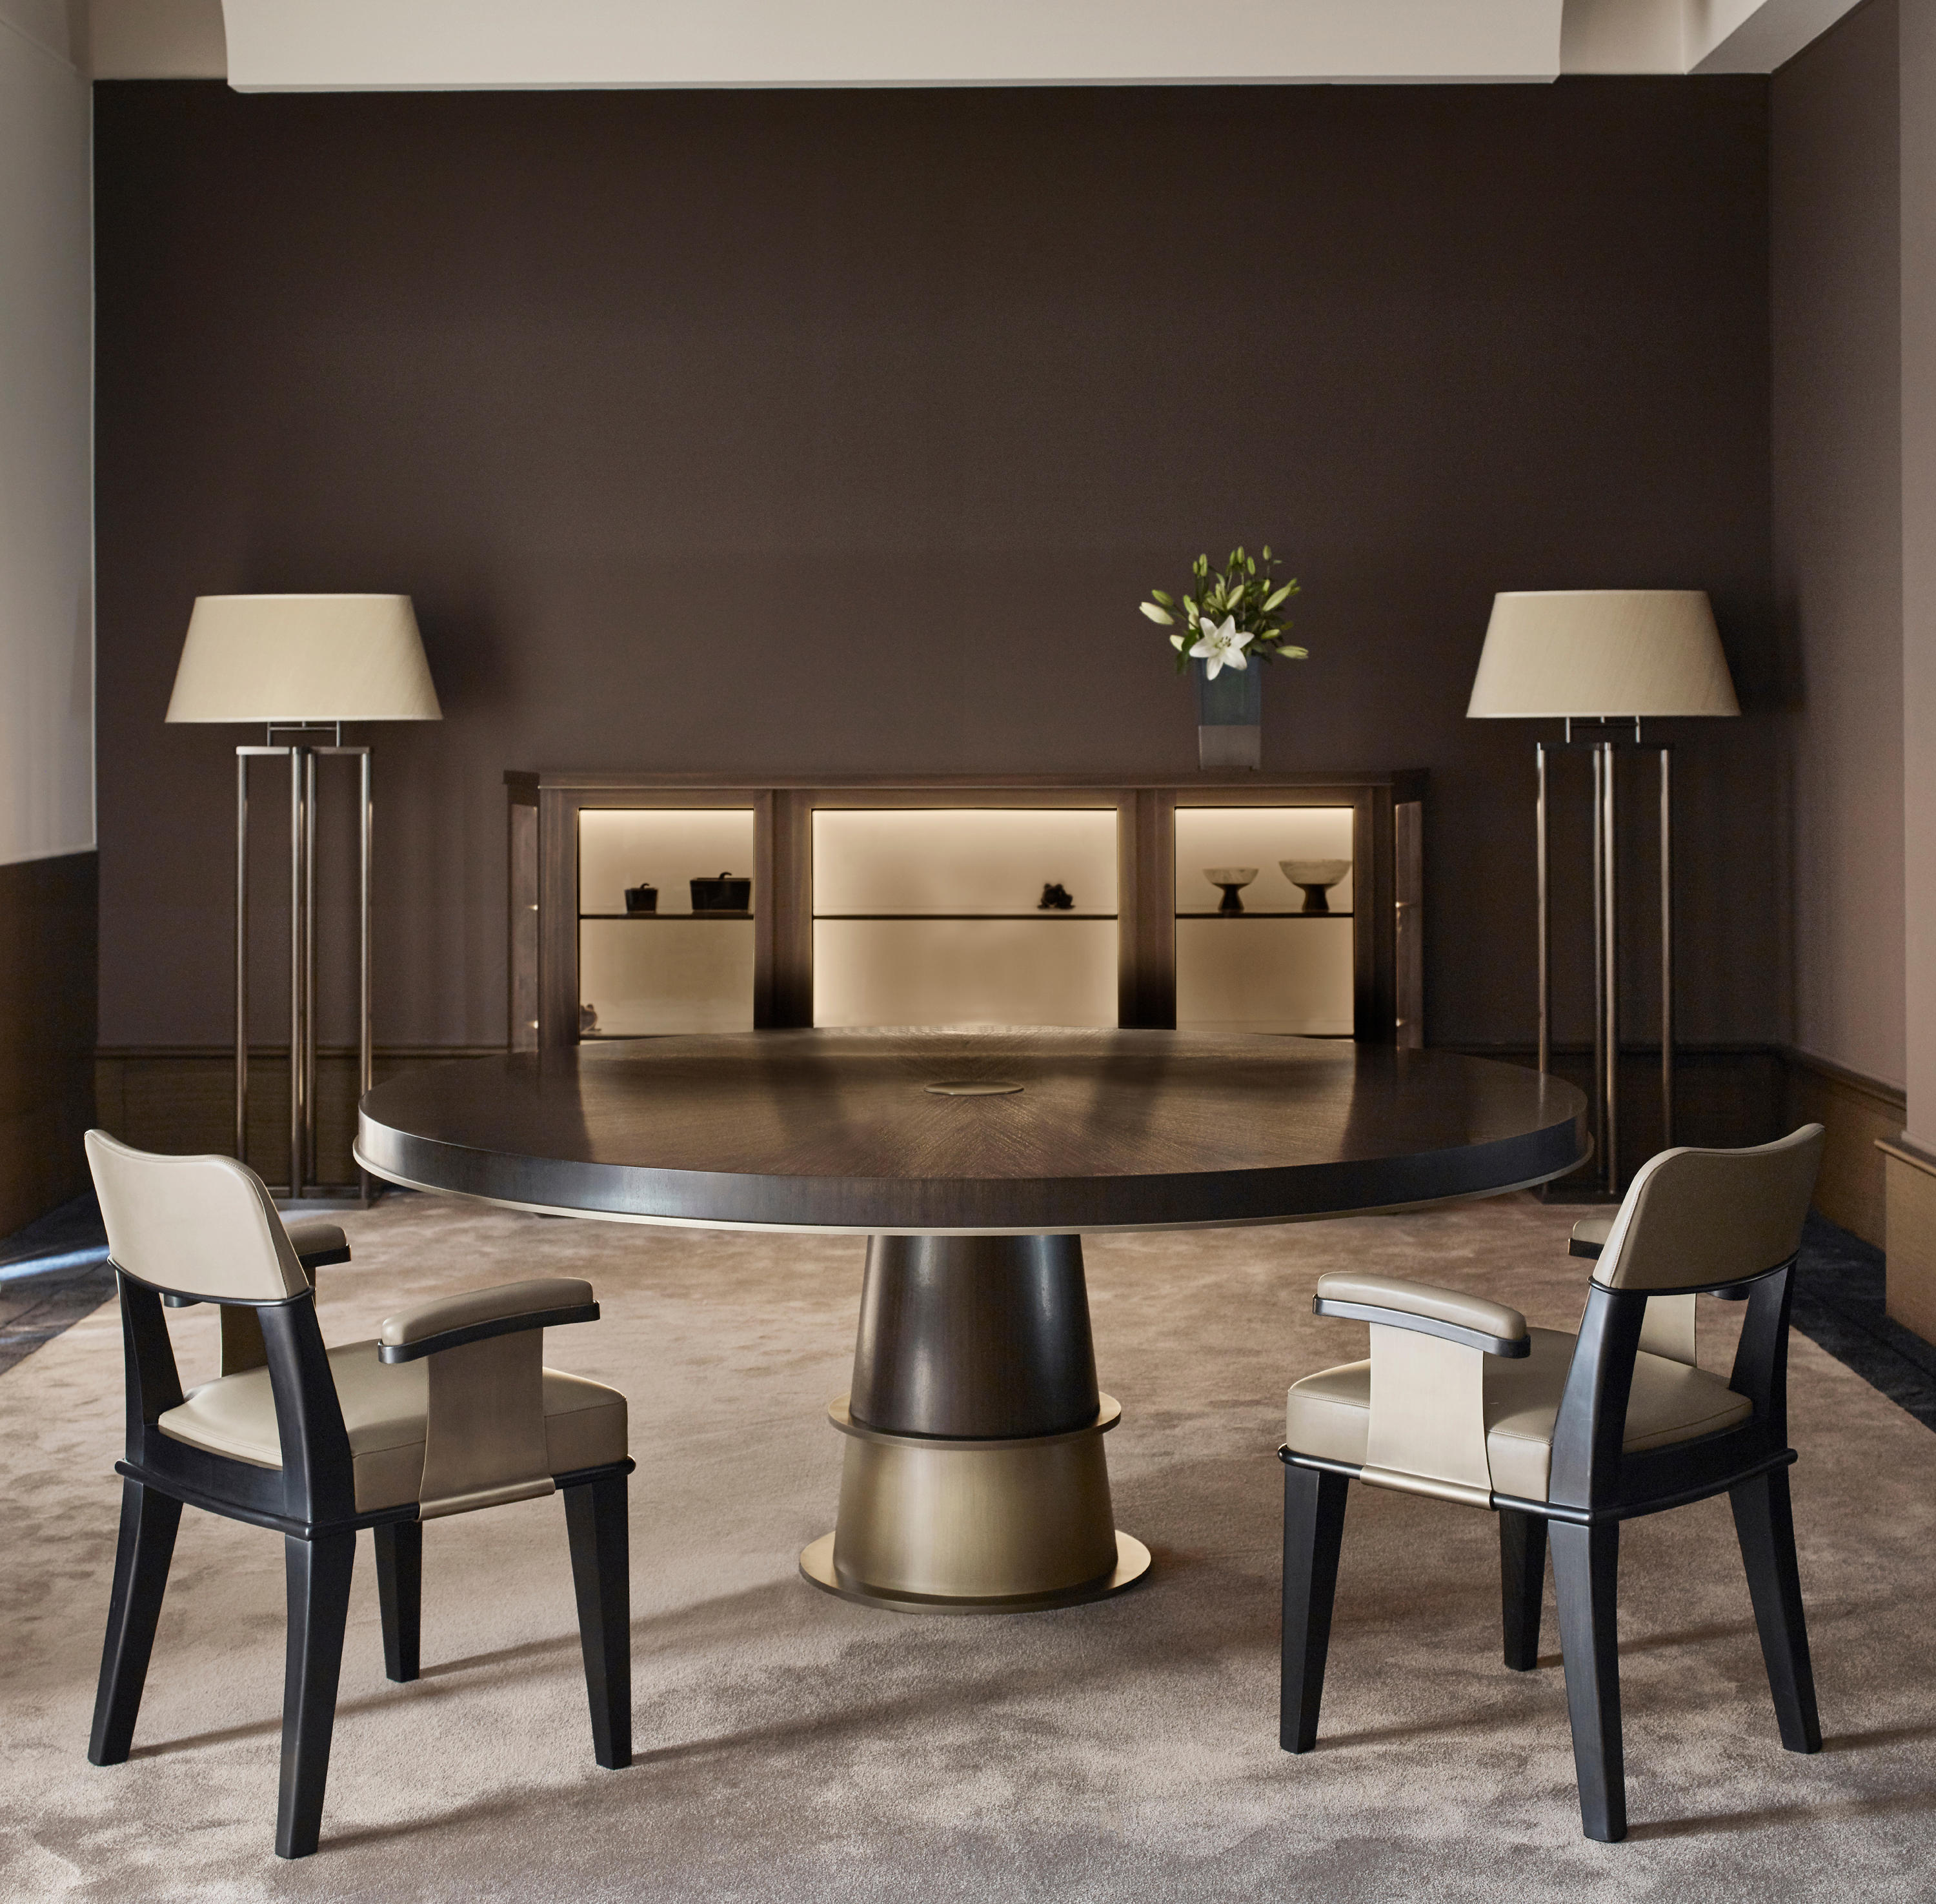 Tornasole Dining Table Dining Tables From Promemoria